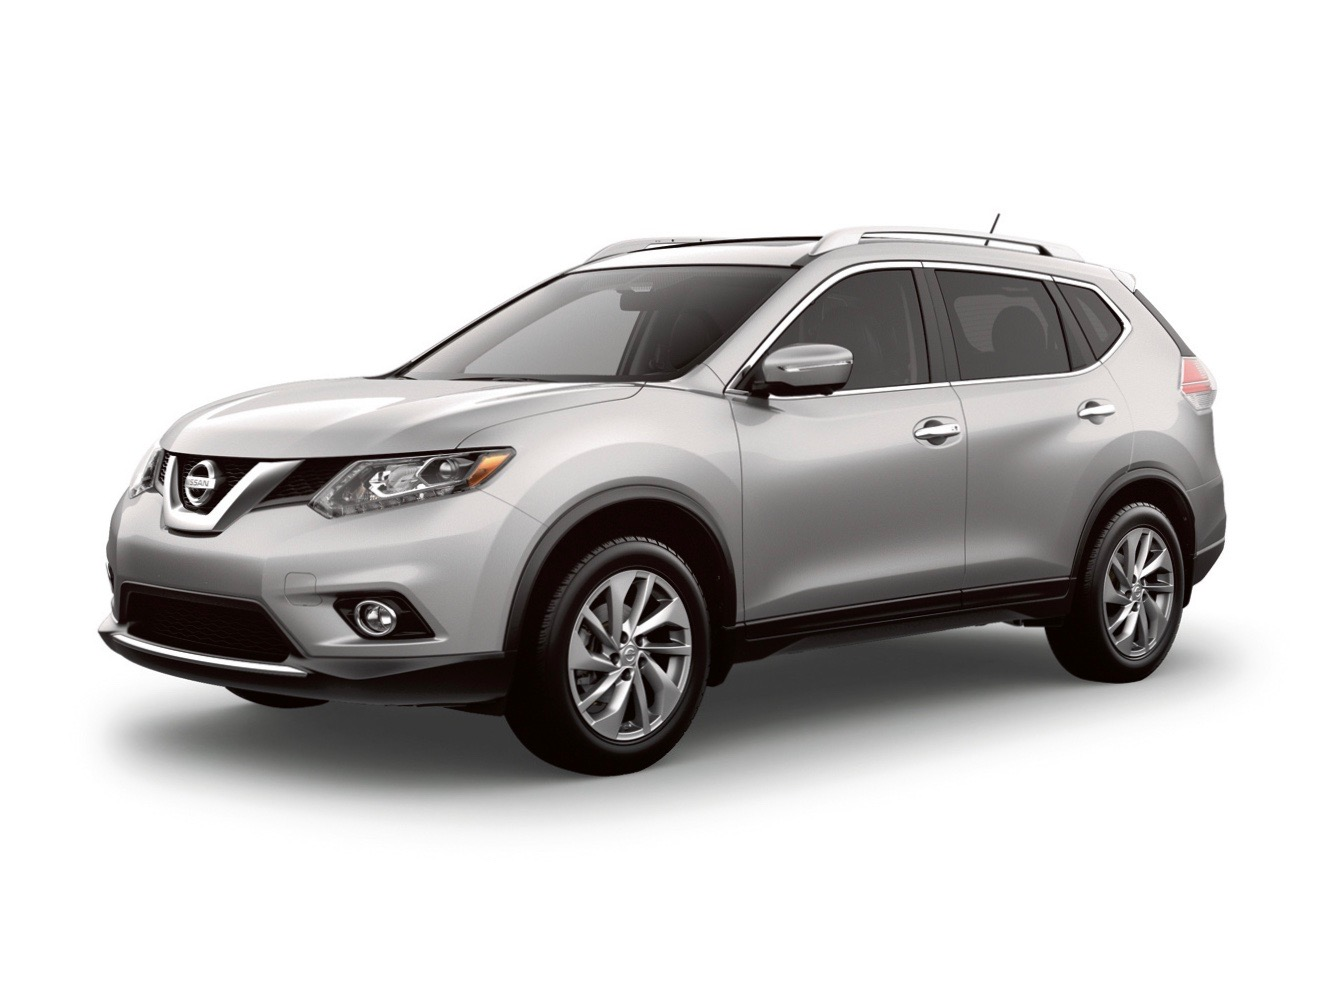 2015 nissan rogue select review nissan recomended car. Black Bedroom Furniture Sets. Home Design Ideas